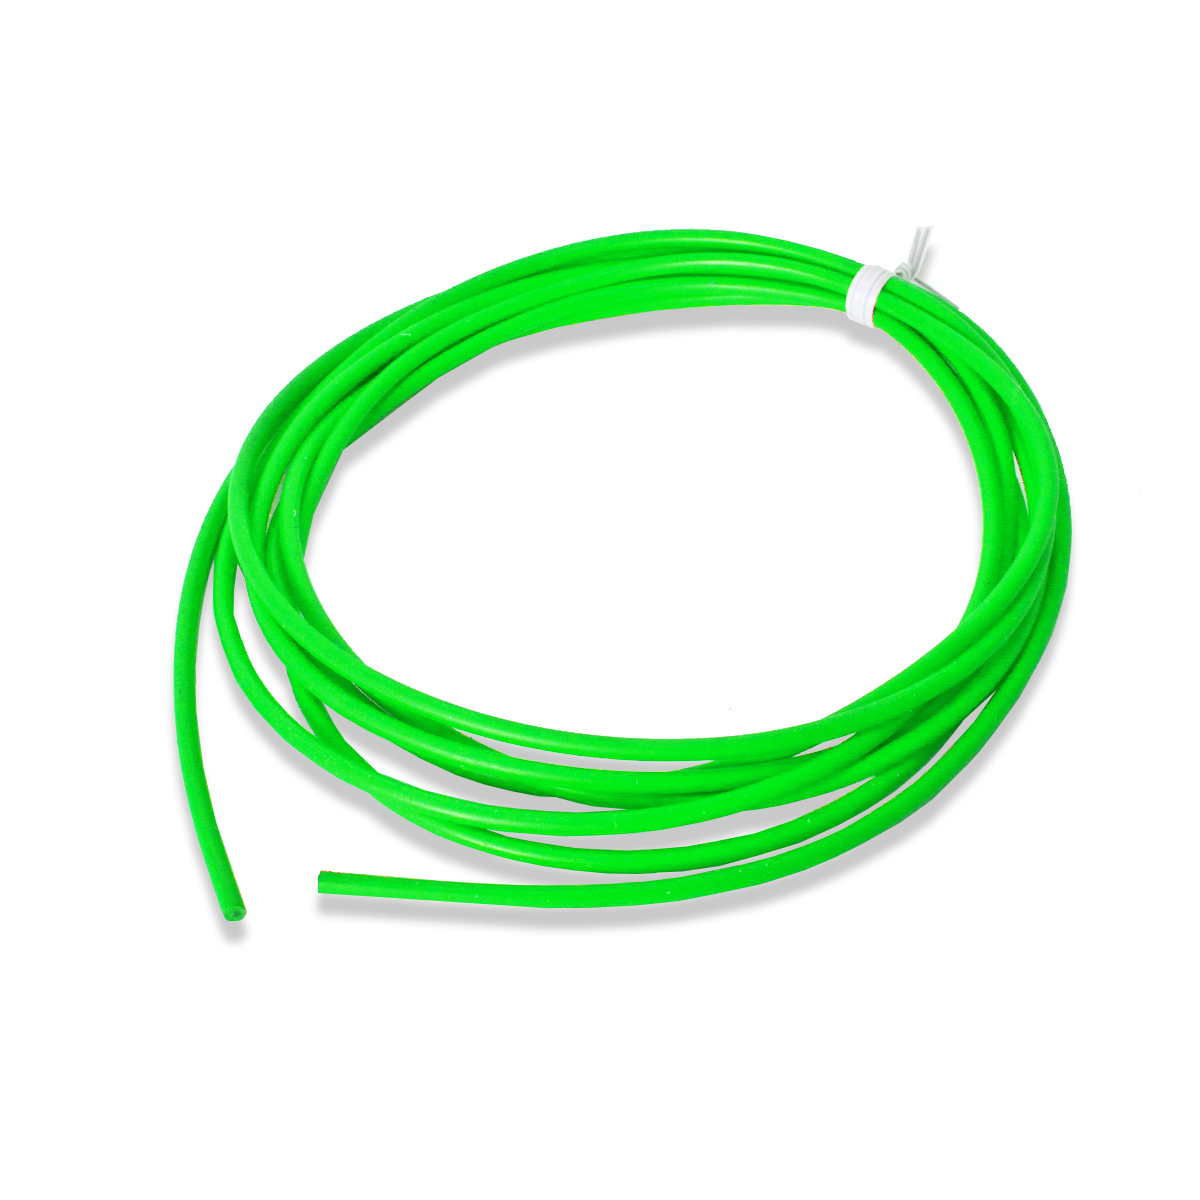 Coolflex45 silicone Wire 10awg per foot